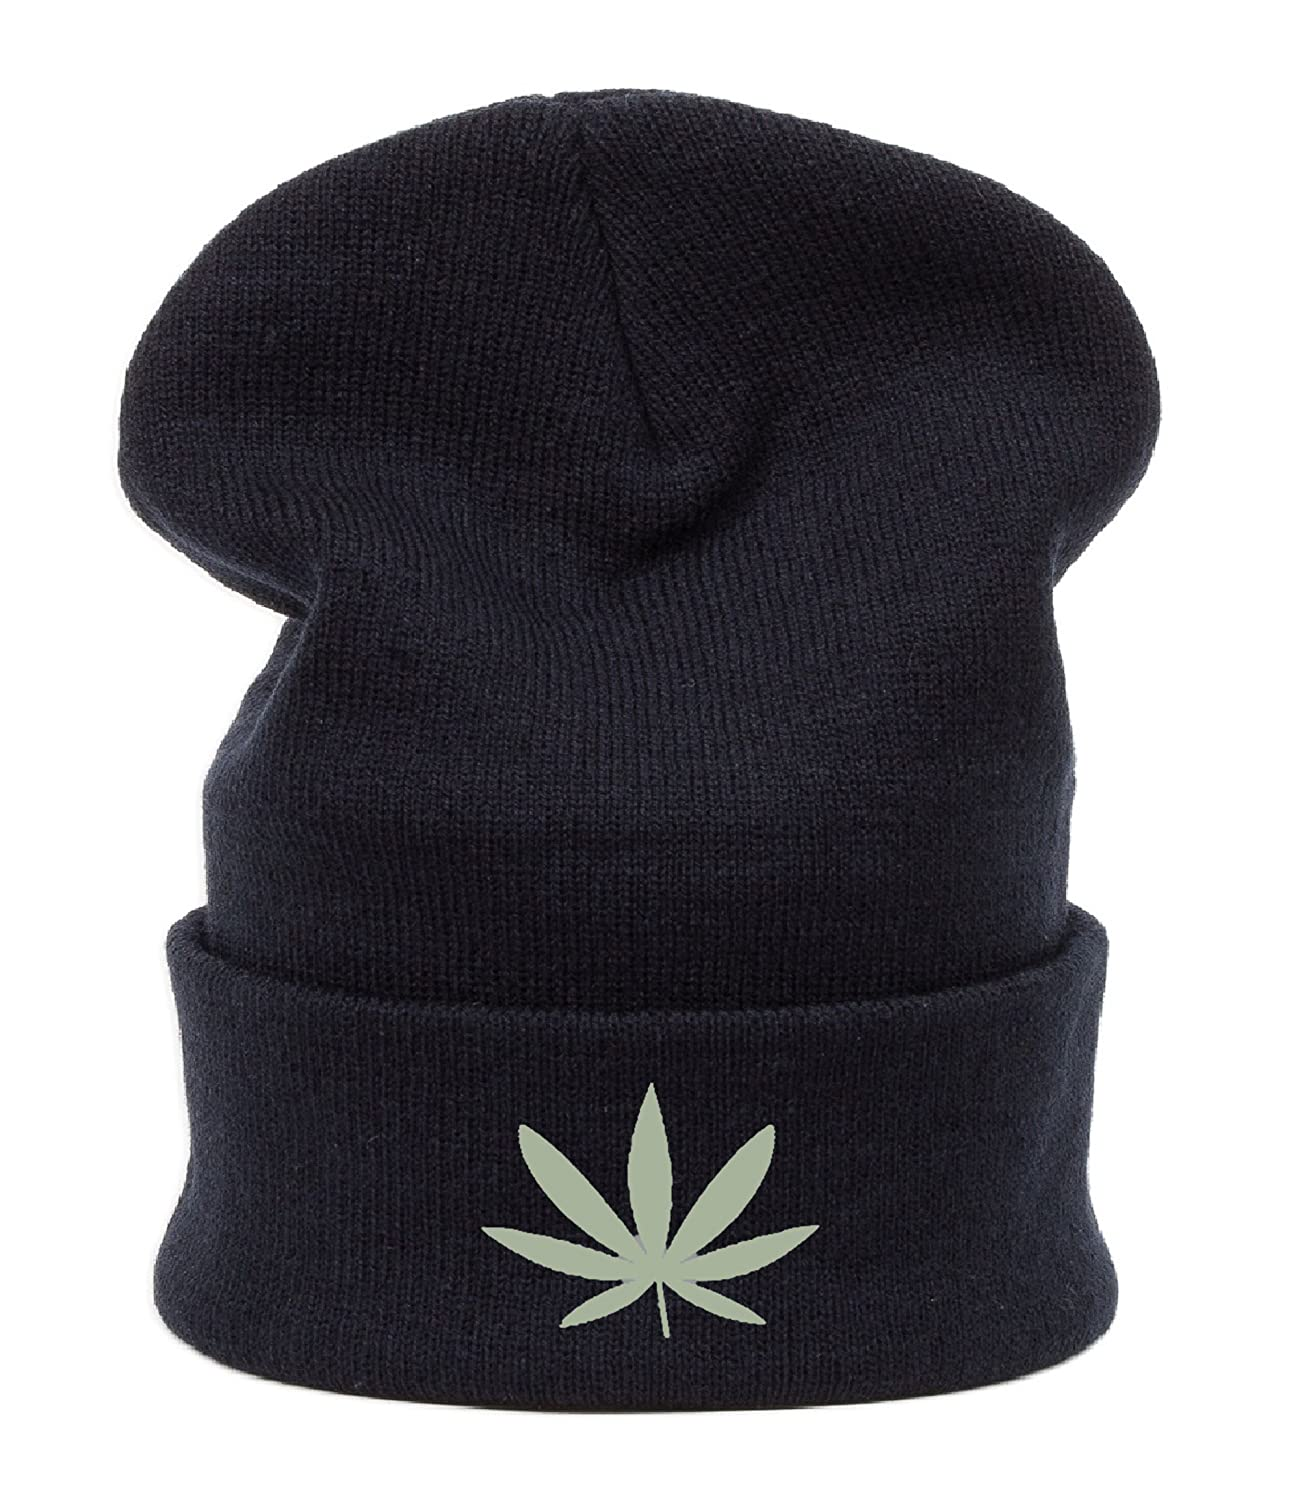 Winter Ski Beanie Mütze Herren I love Damen GANJA 420 WEED Bad Hair Day 1994 Swag Diamond HAT HATS